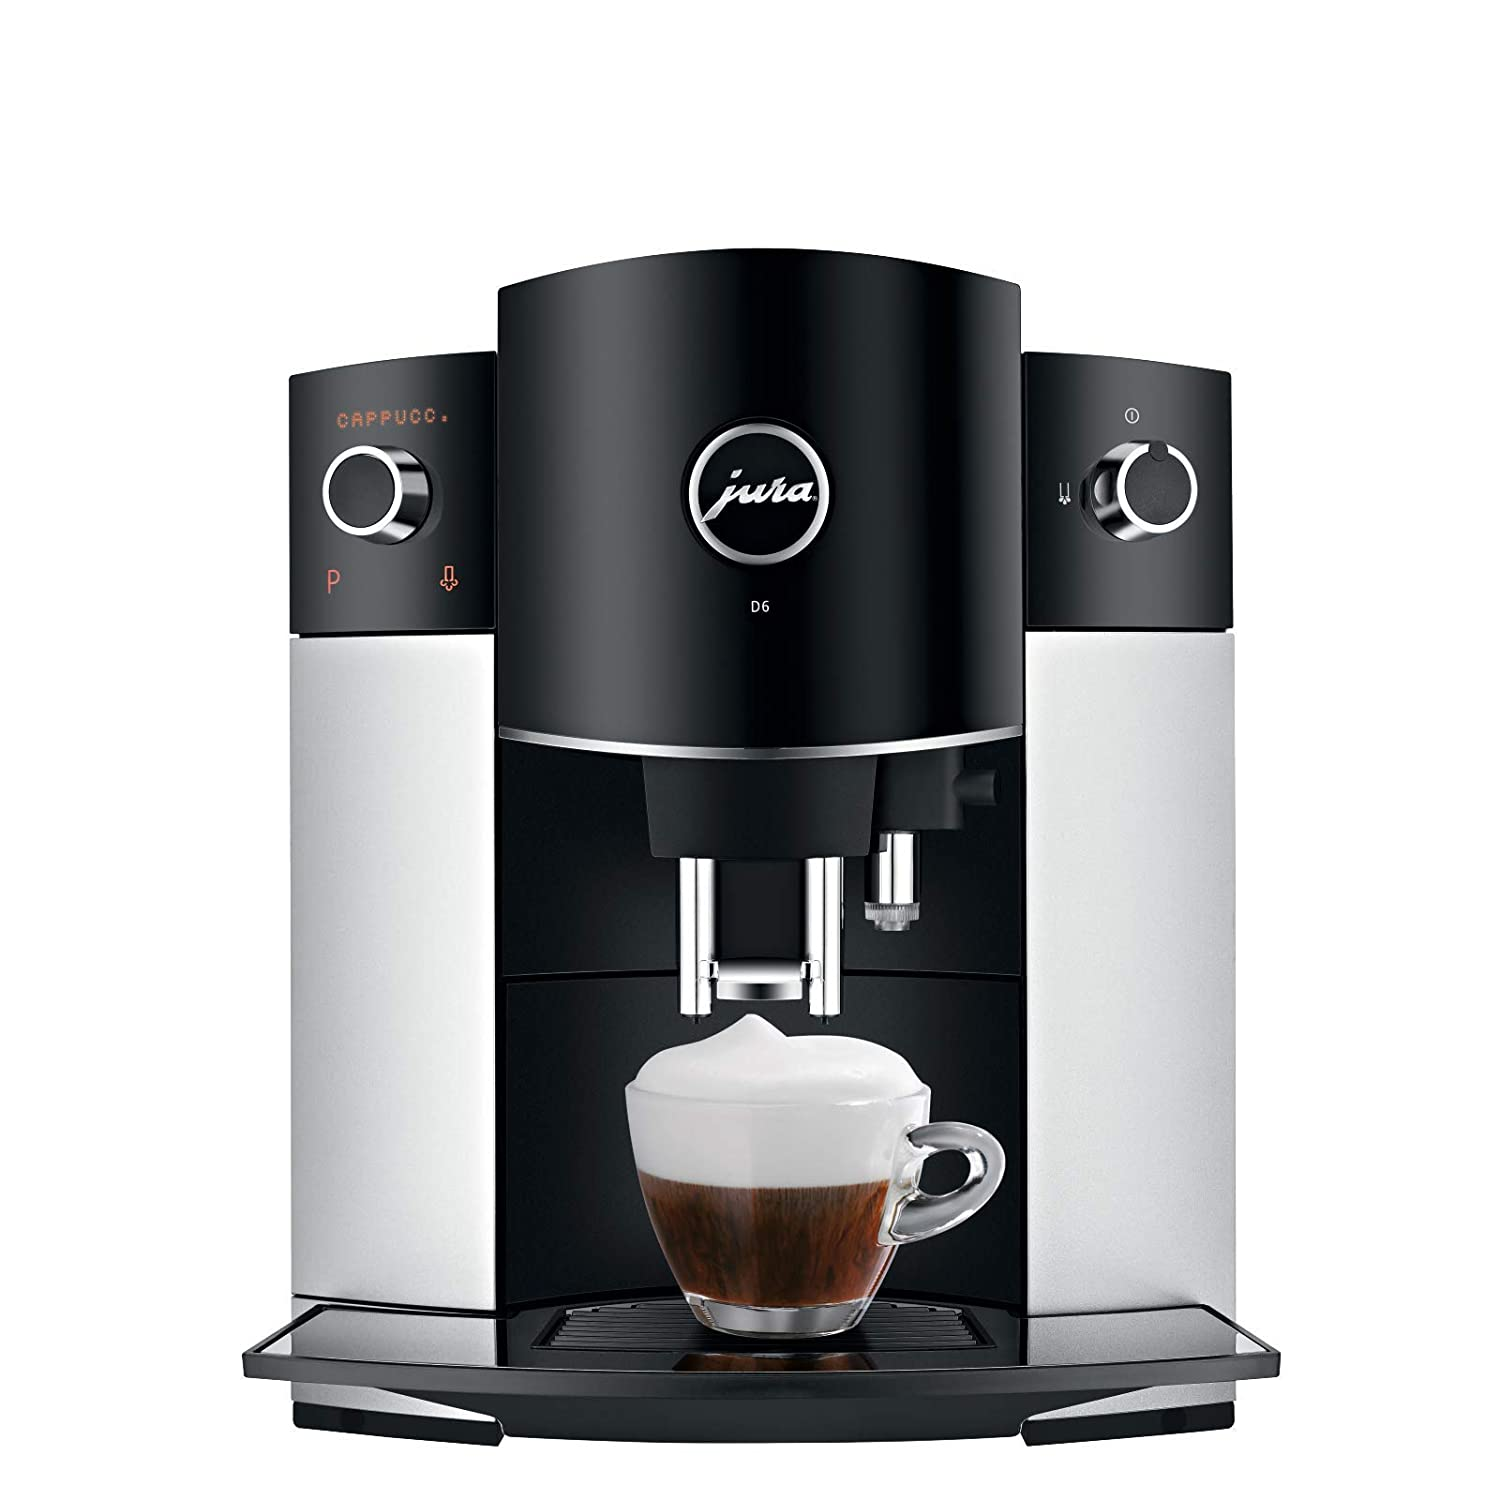 Jura 15216 D6 Automatic Coffee Machine